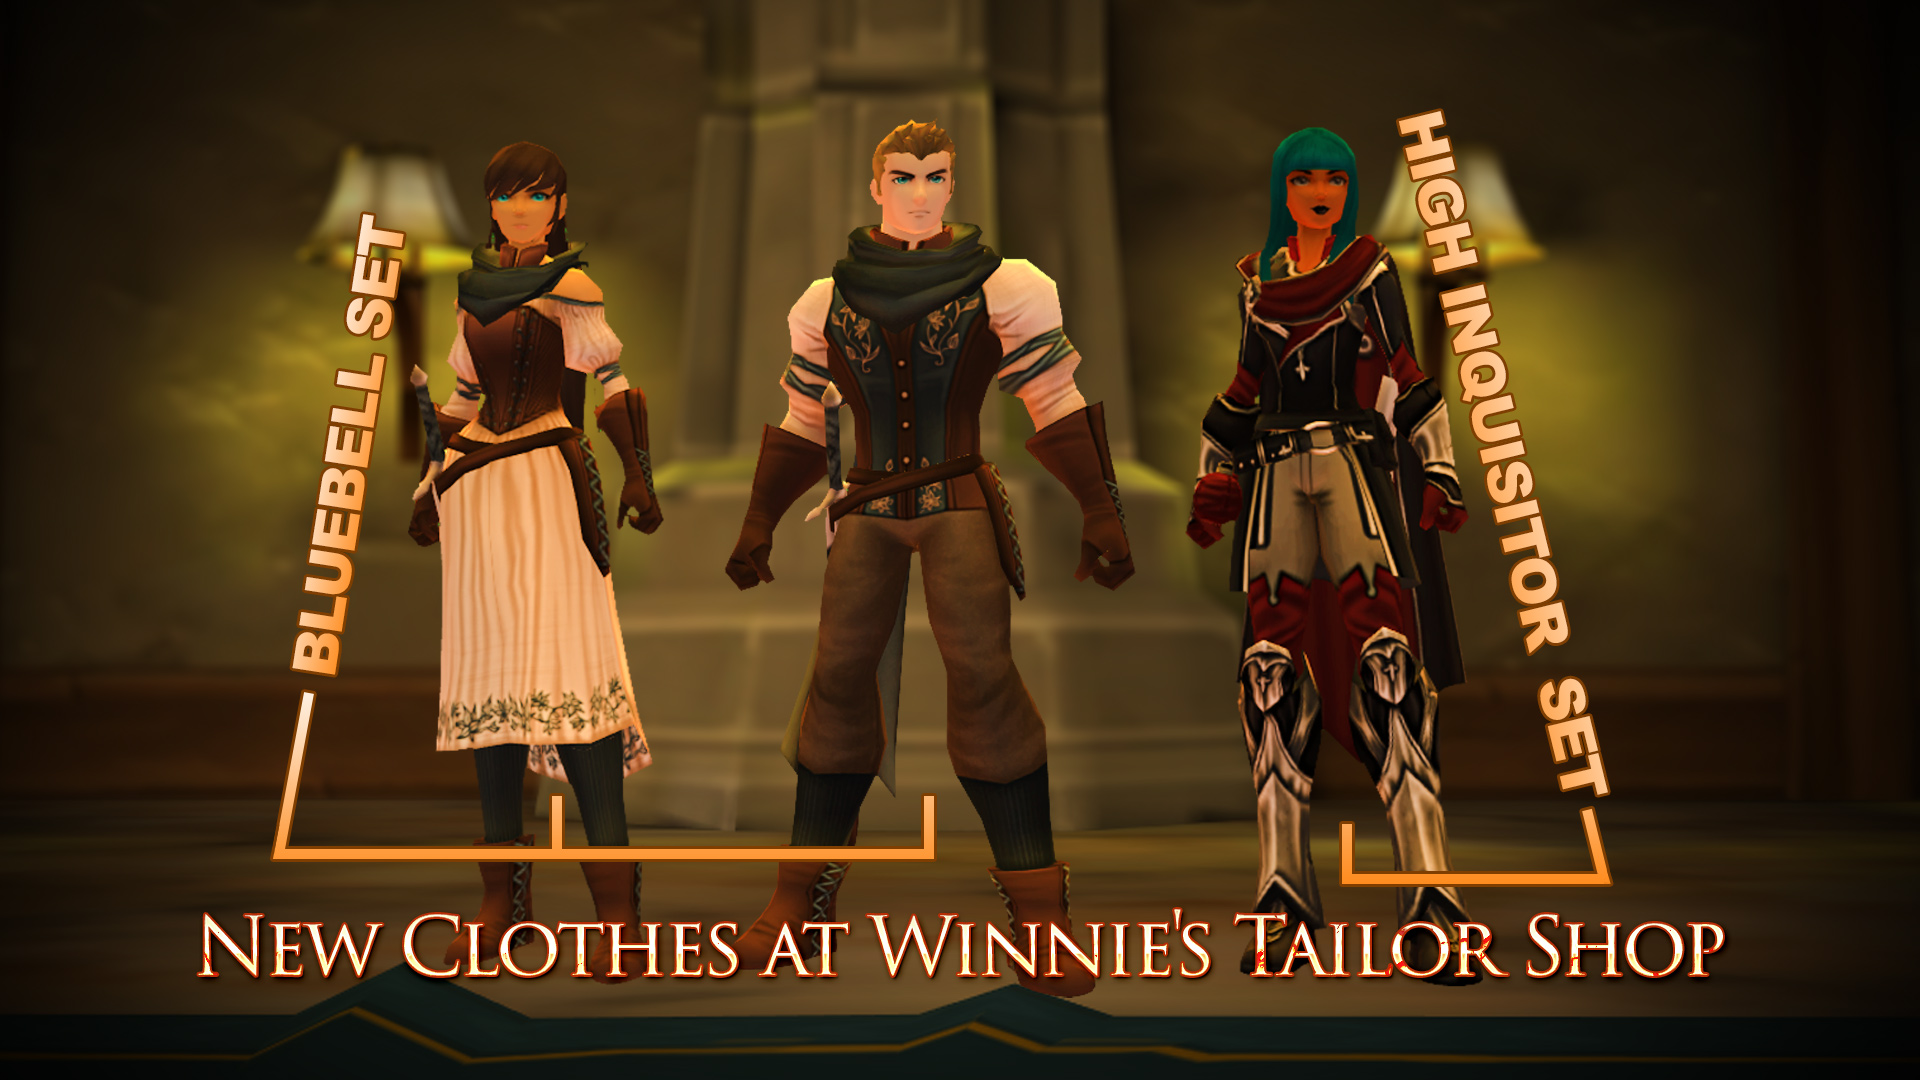 Tailor new clothes at Winnie's Tailor Shop